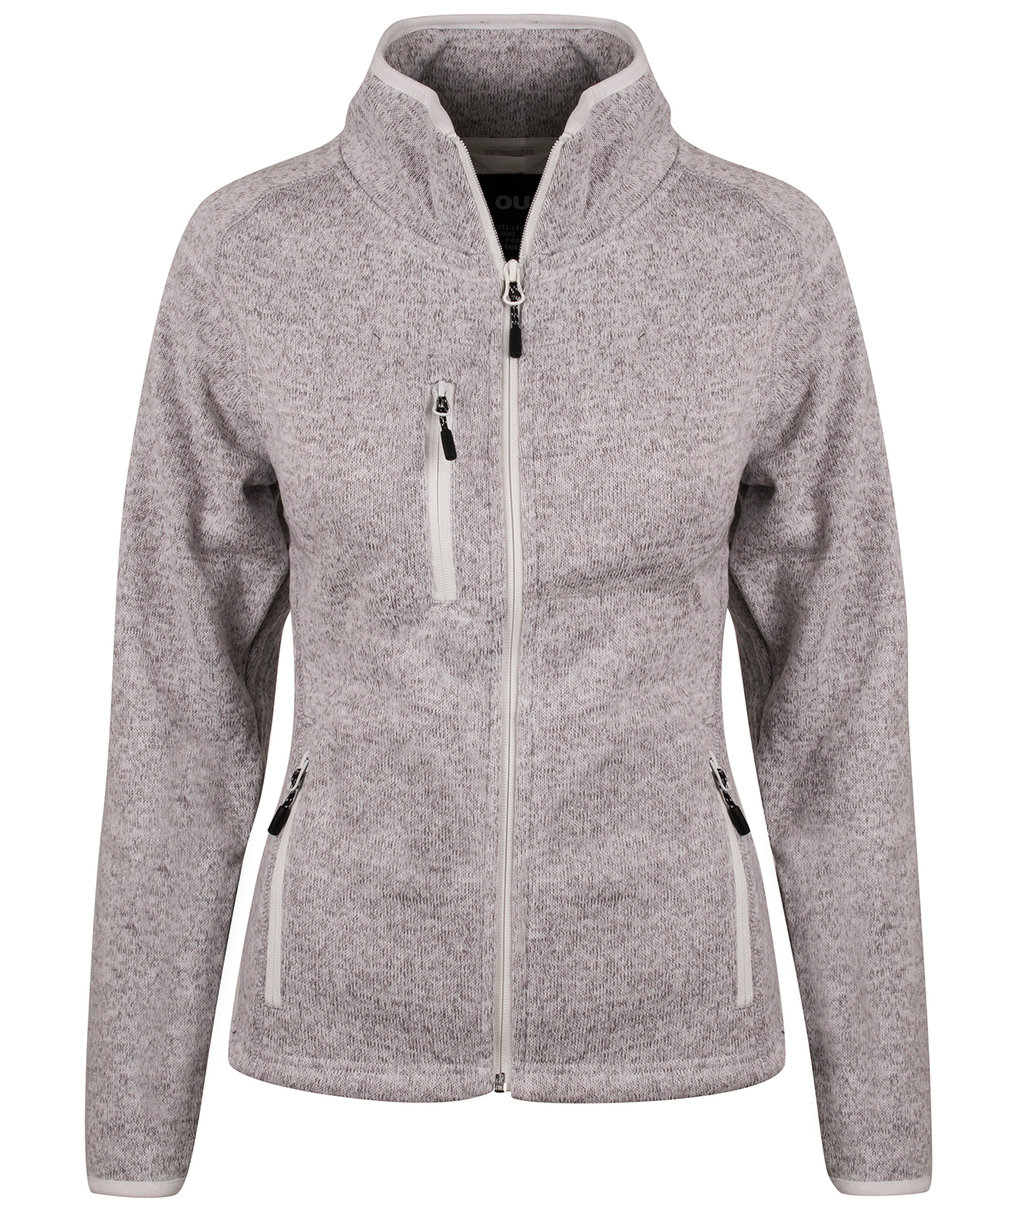 YOU Squaw valley women's knitted fleece, Lightgrey Melange/ White